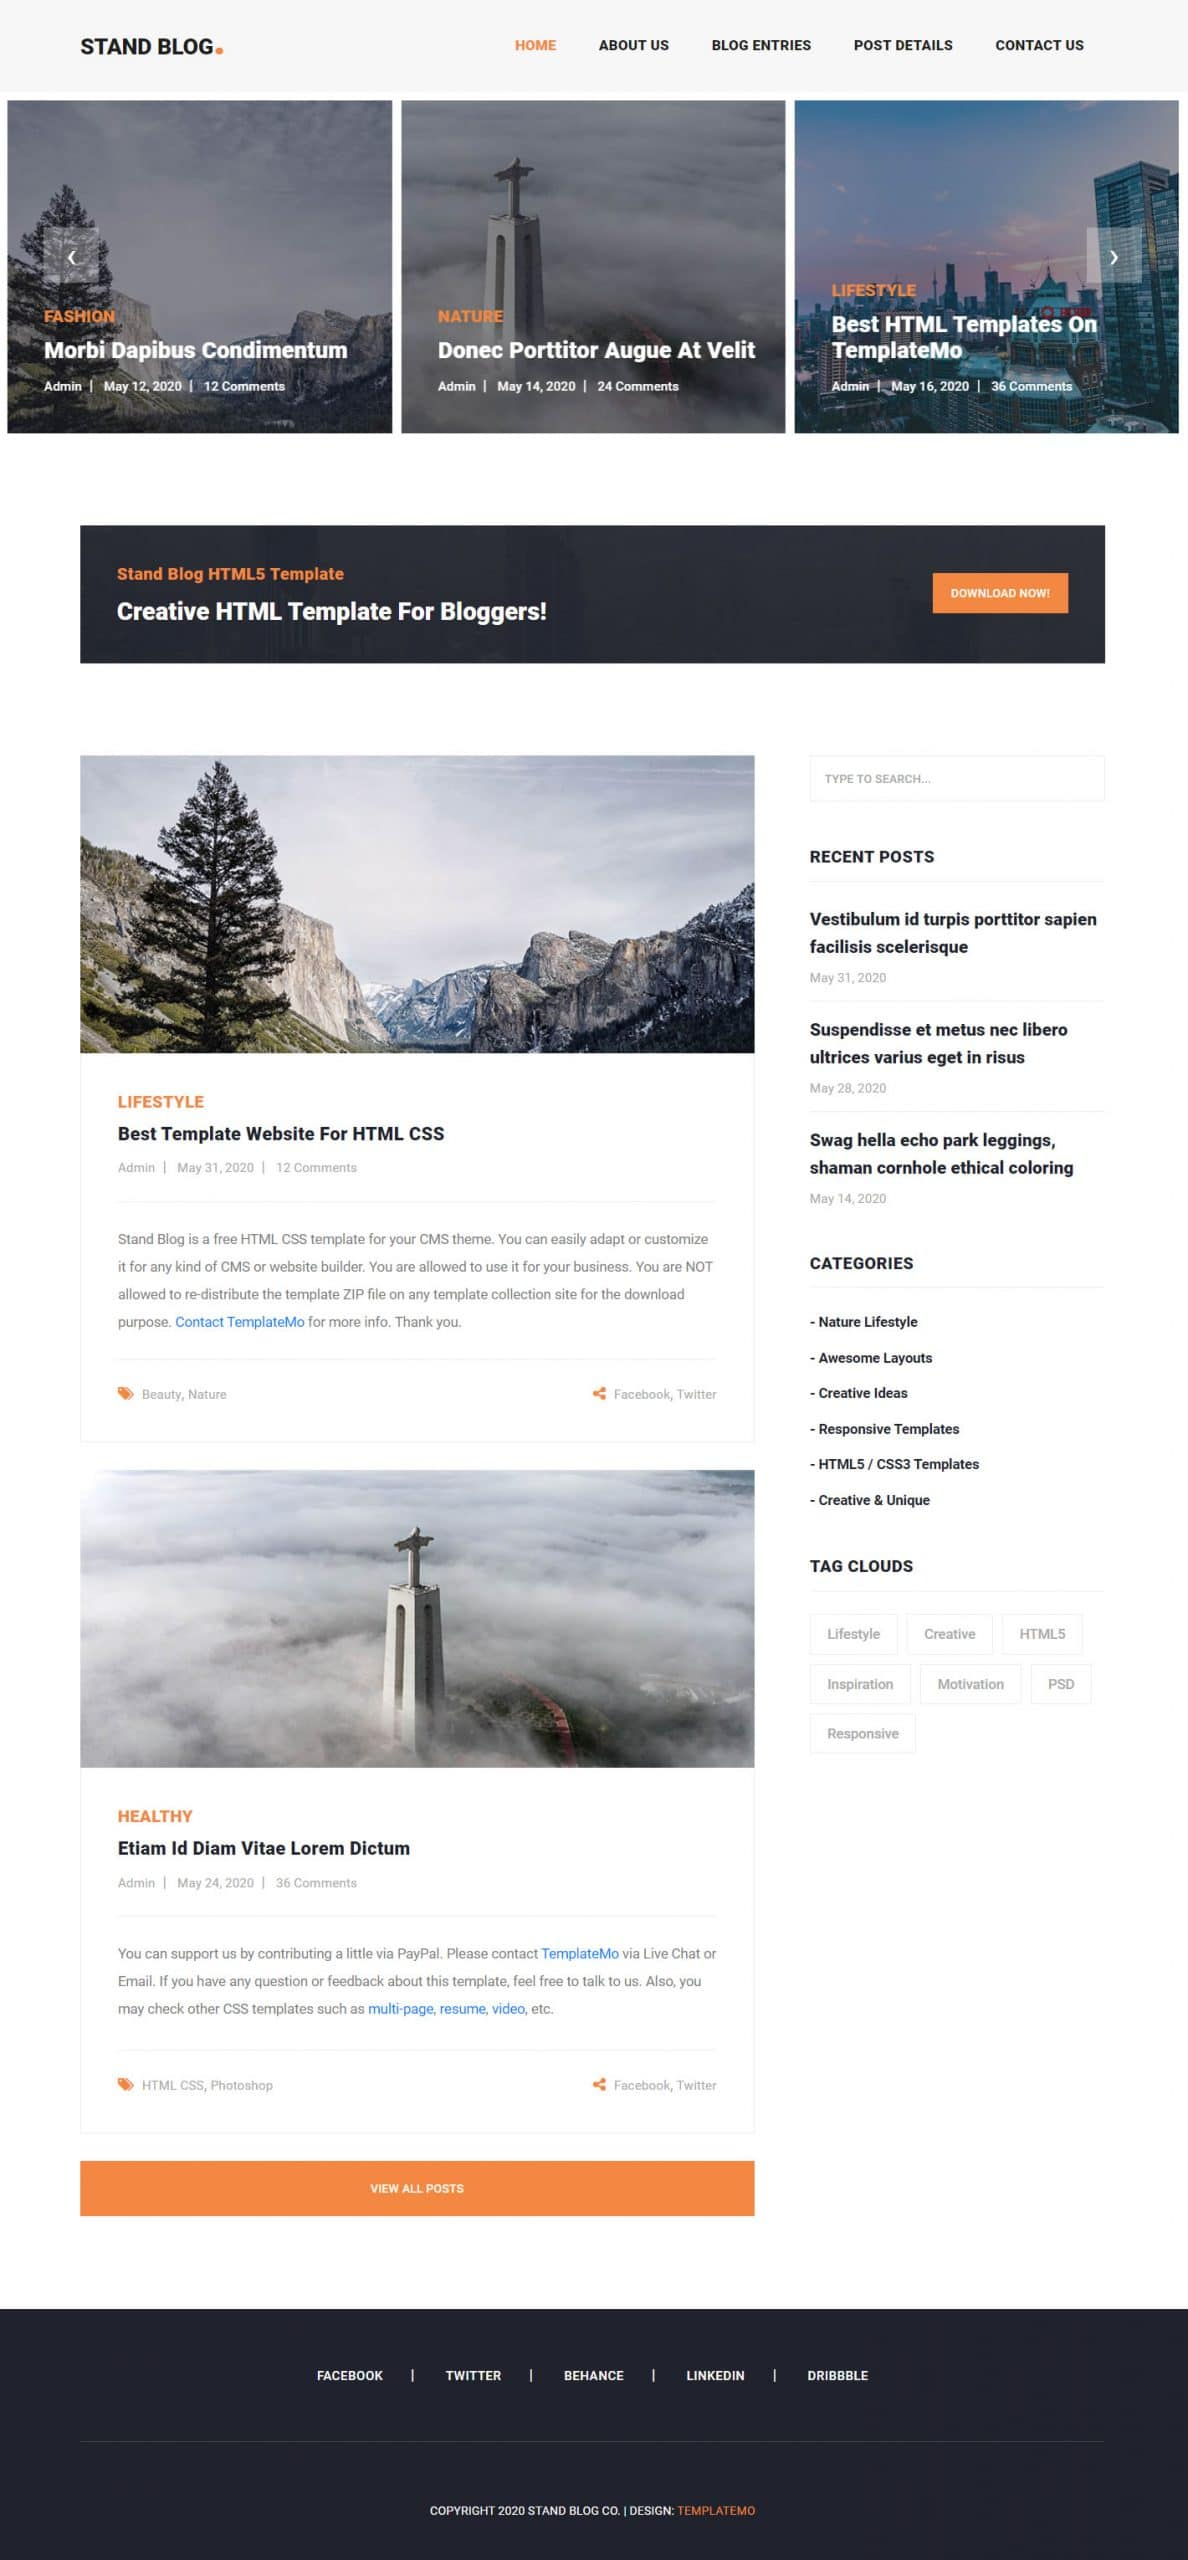 Stand Blog - free blog website HTML template